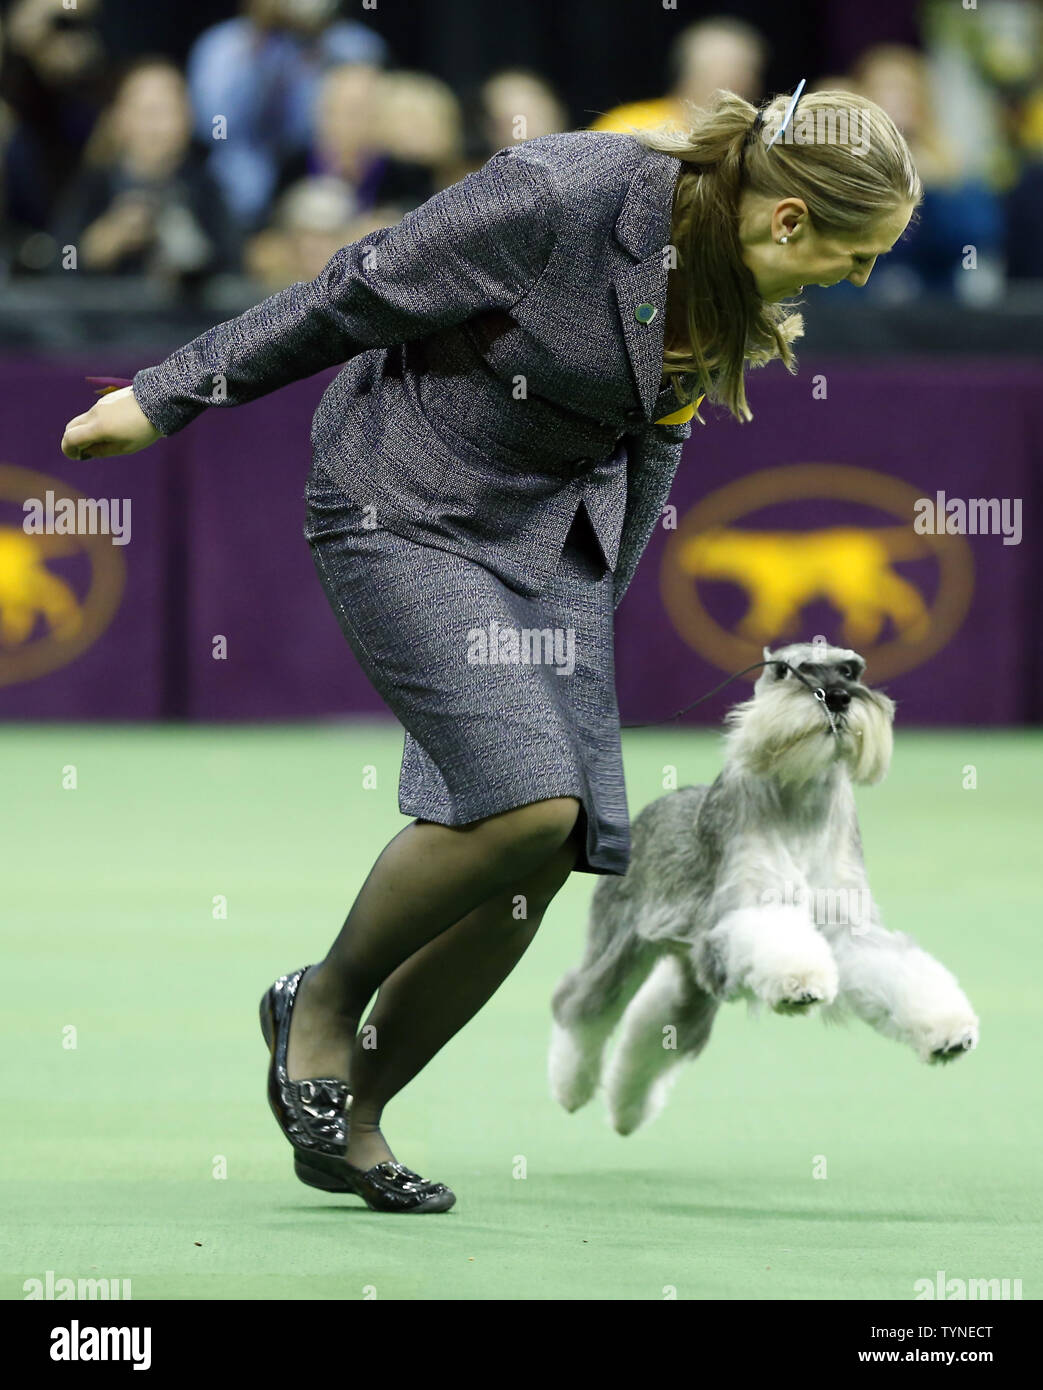 A Standard Schnauzer named competes in the Working Group at the 137th Annual Westminster Kennel Club Dog Show at Madison Square Garden in New York City on February 12, 2013.      UPI/John Angelillo Stock Photo